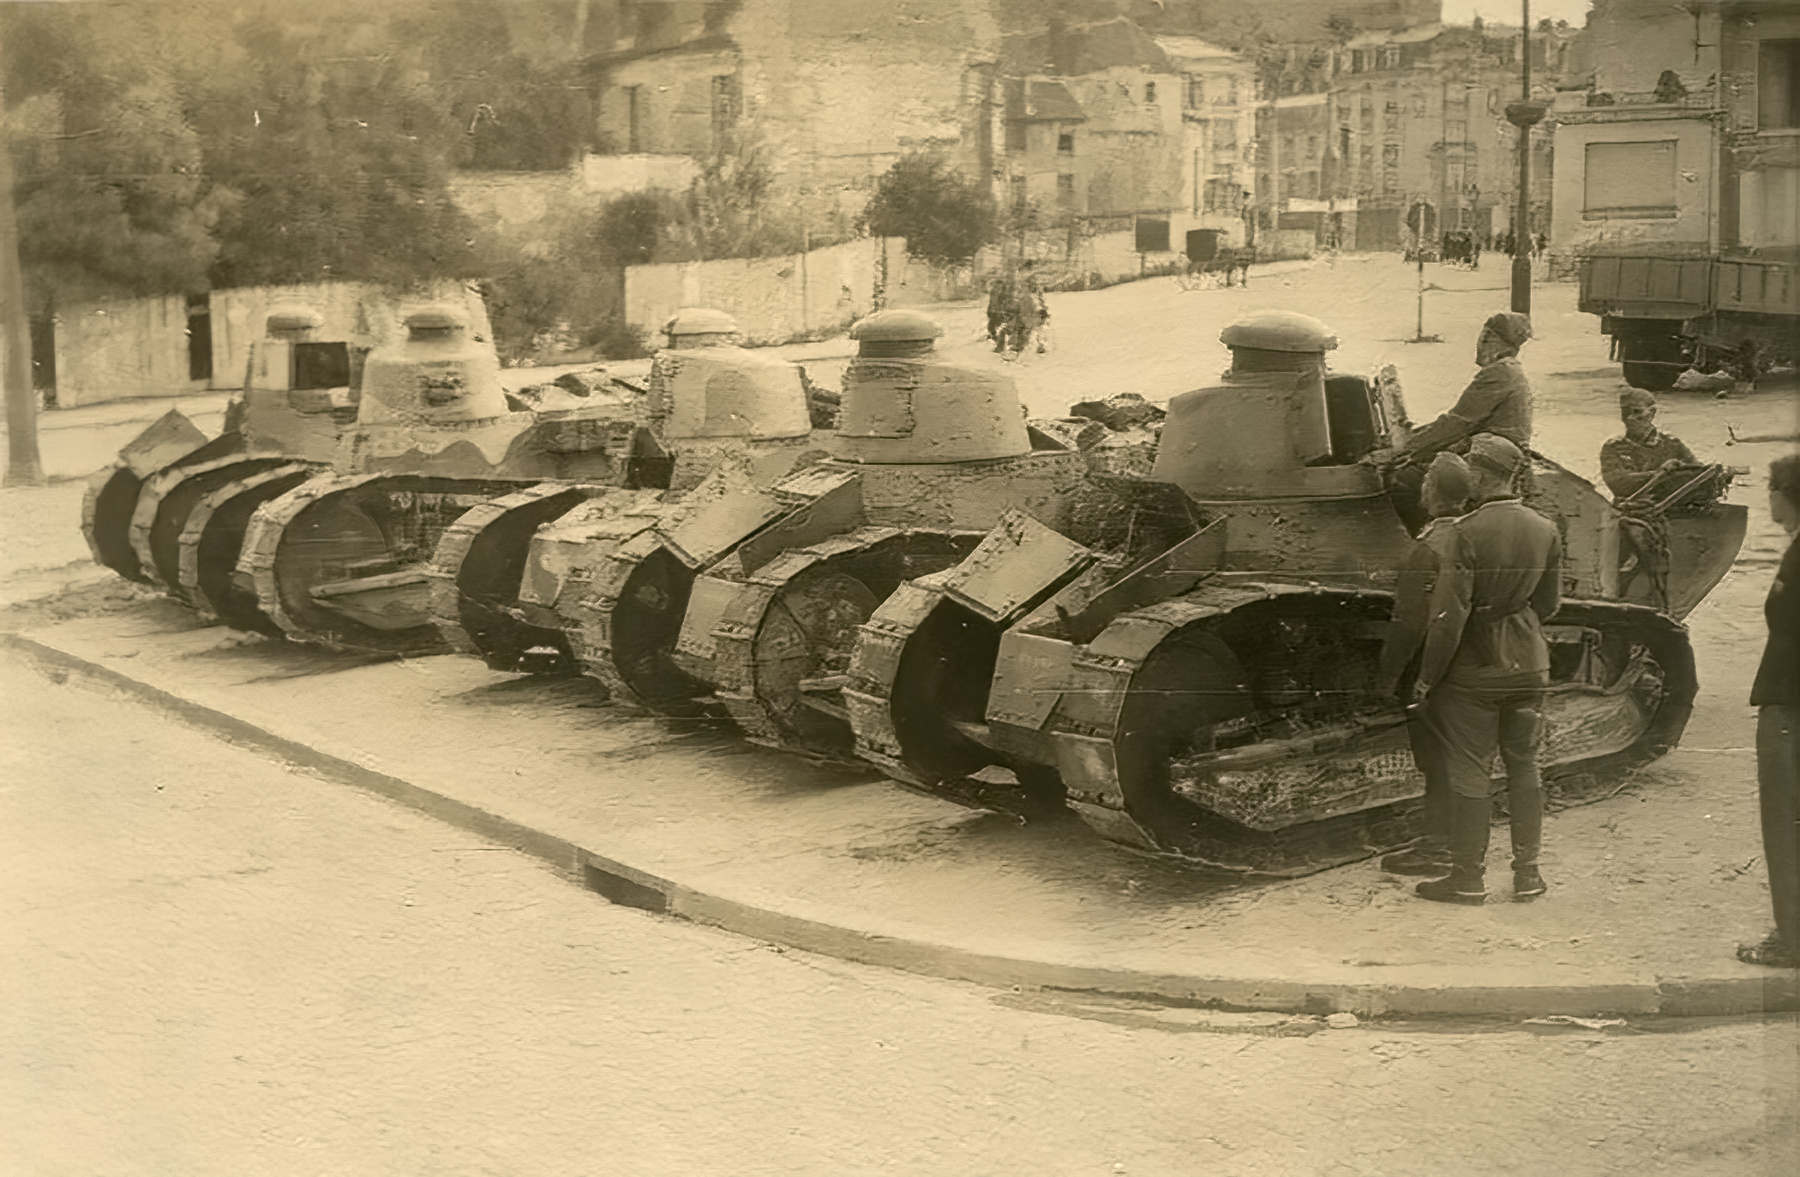 French Army Renault FT 17s captured during the Battle of France 1940 ebay 01